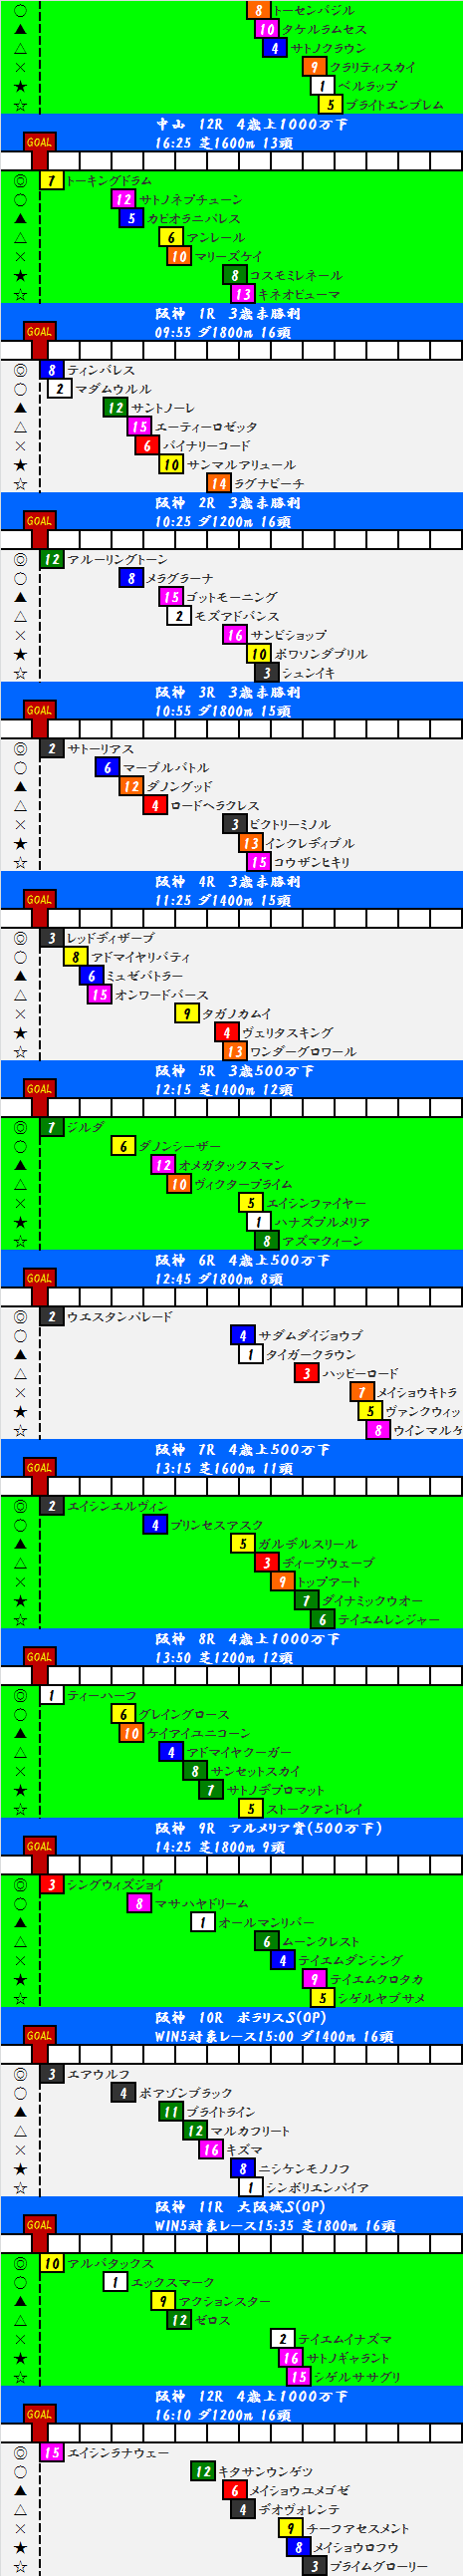 2015030802.png